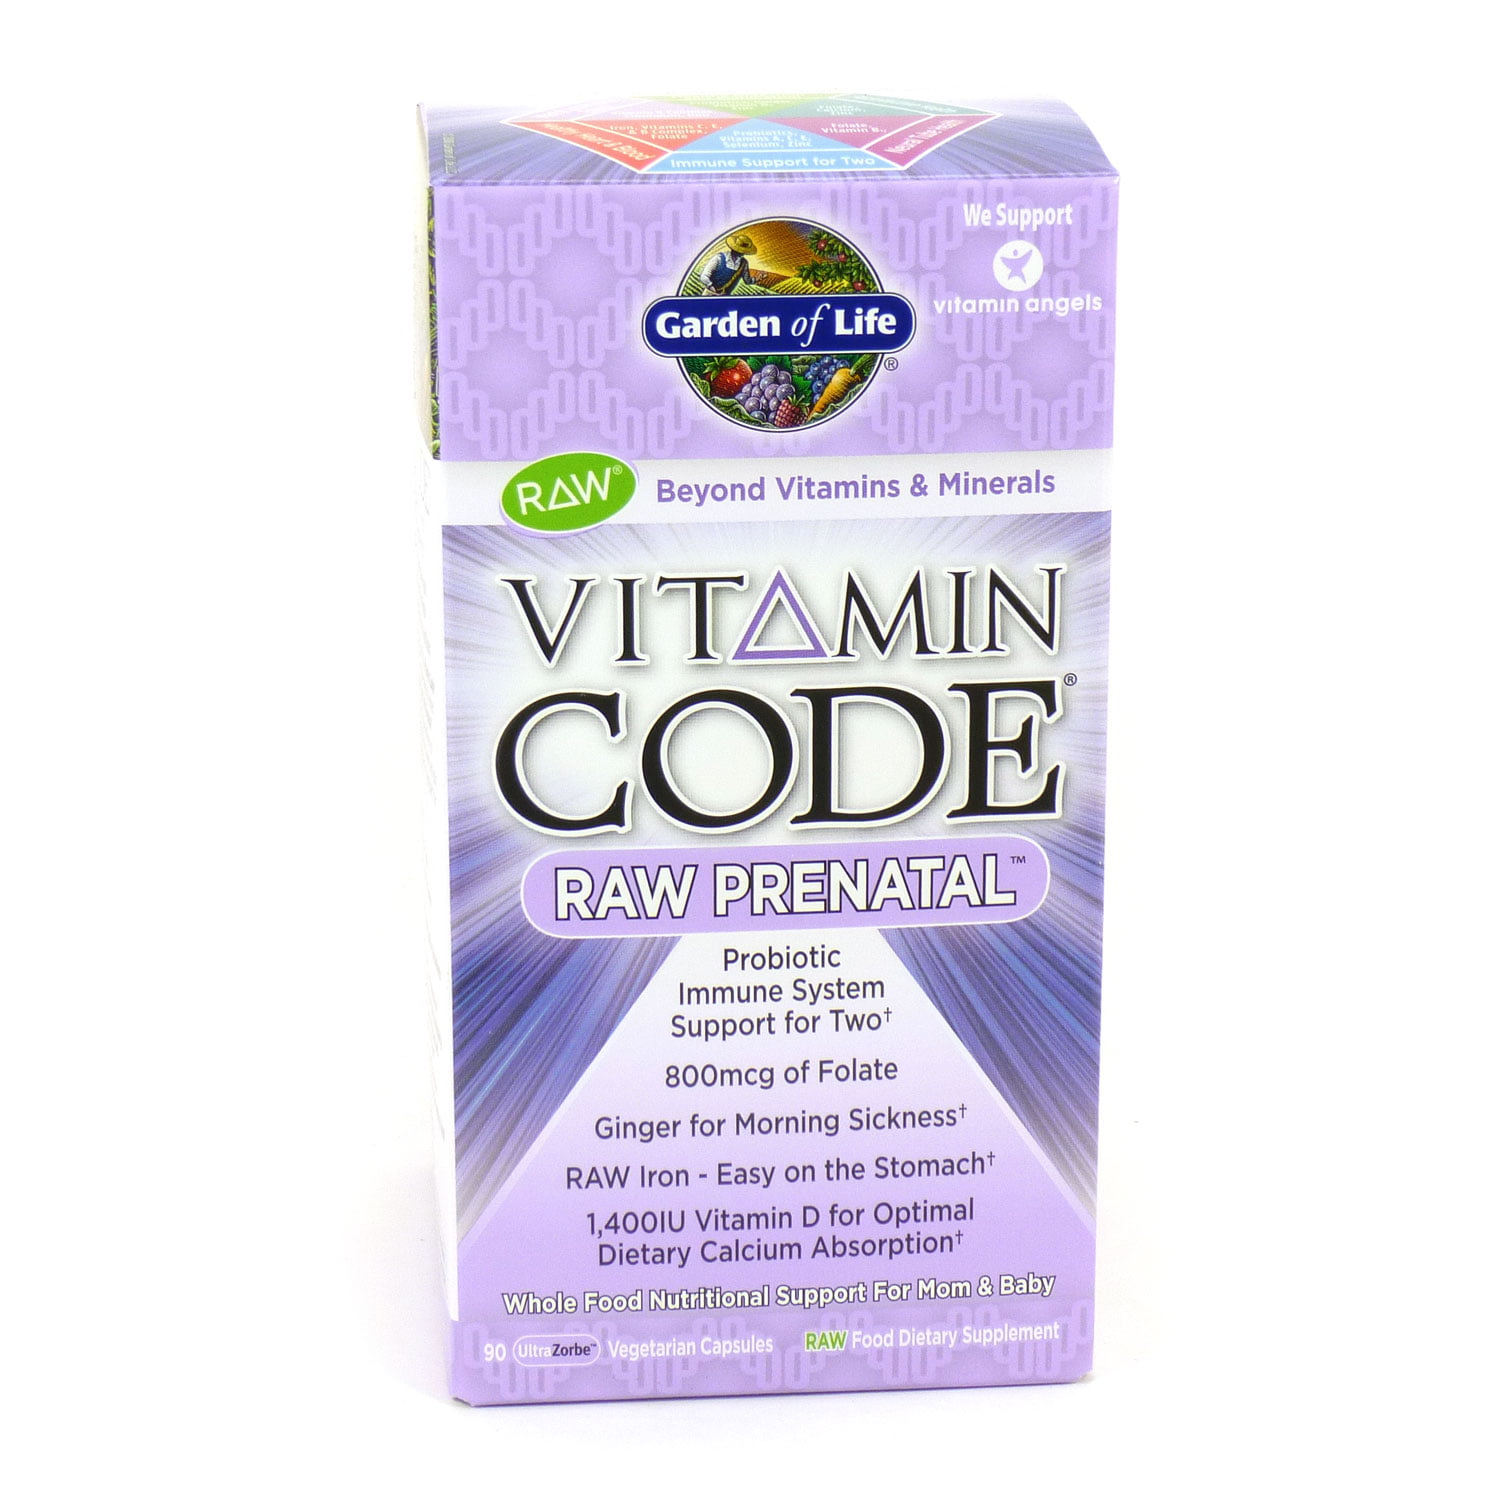 life code s nature of charcoal way multivitamin garden women pharmaca activated vitamin capsules